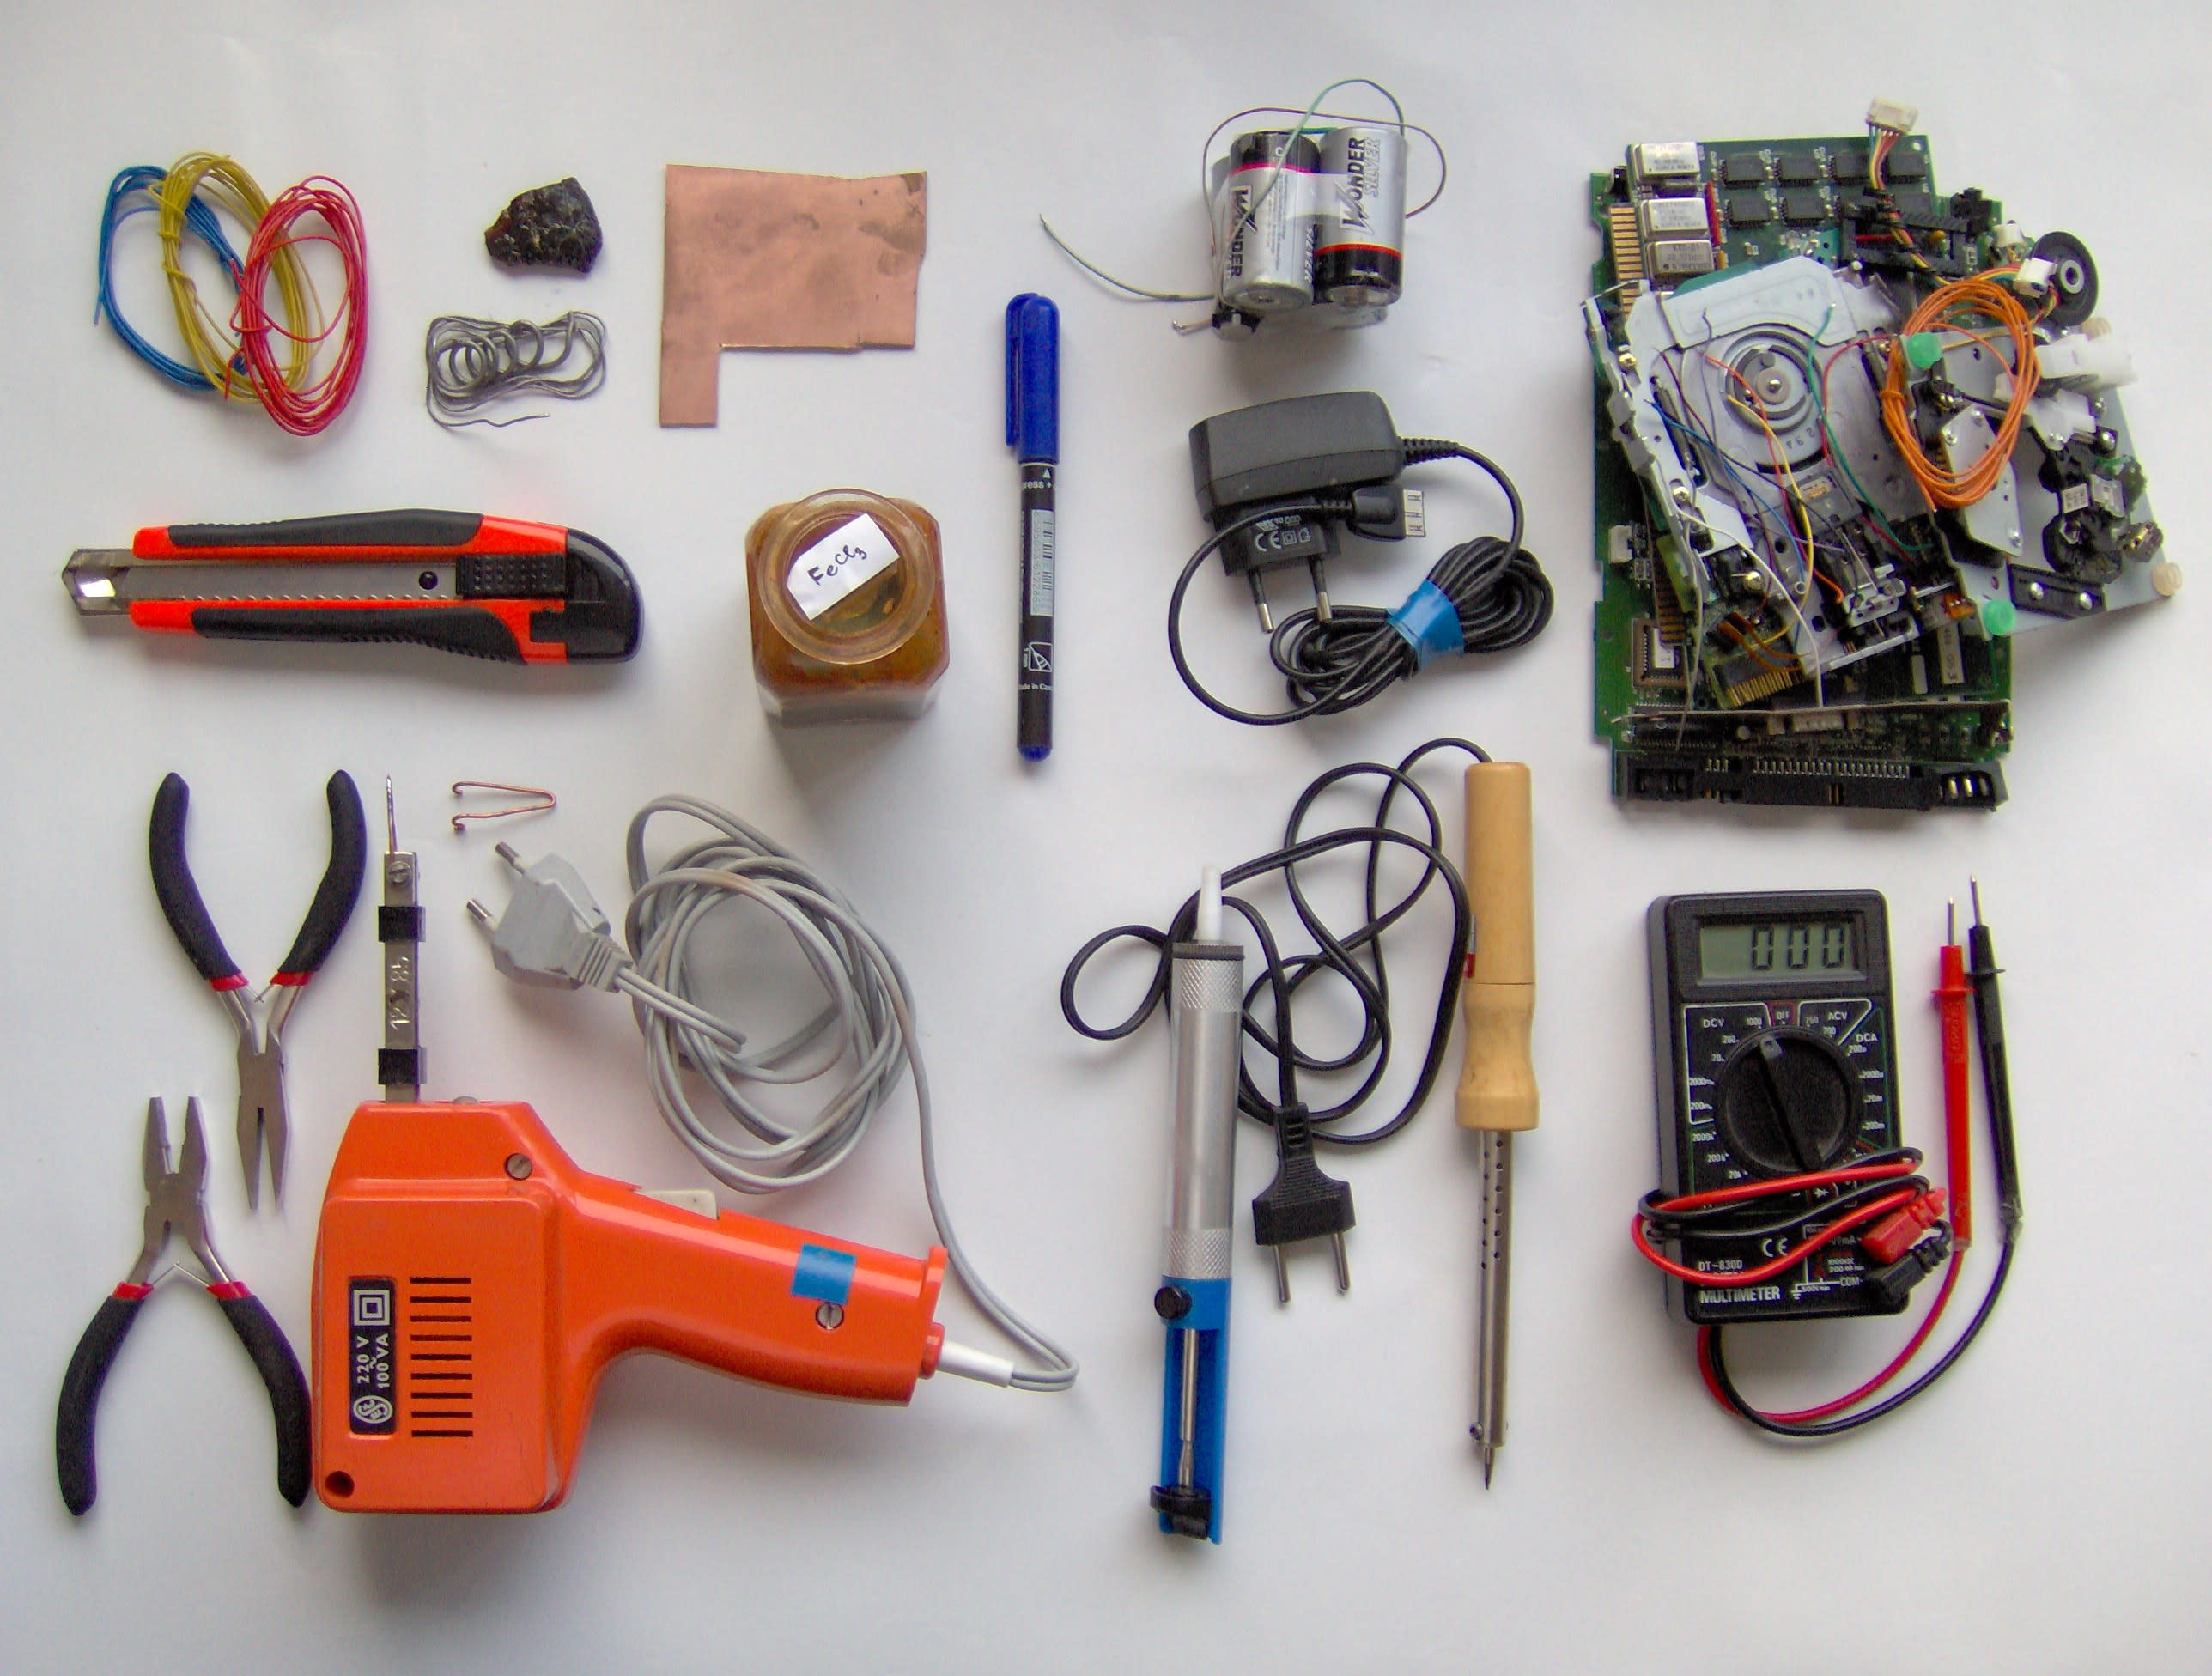 Electronics_tools_and_material_oworlq